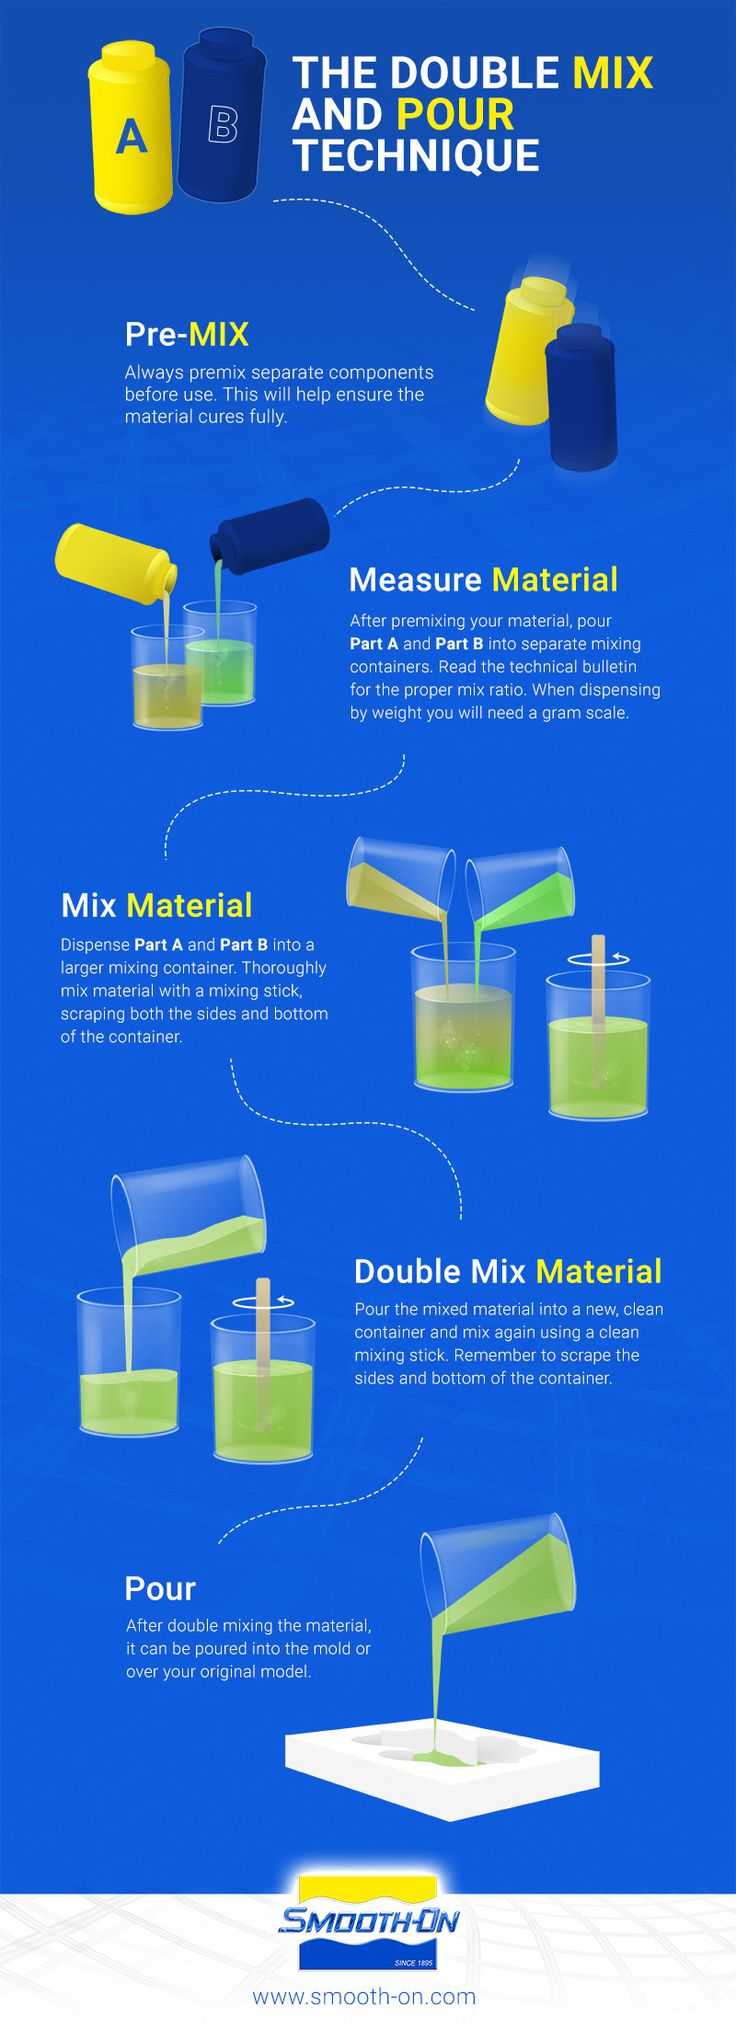 The 'double mix and pour technique' helps ensure thorough material mixing. Check our new infographic which simplifies the process! #moldmaking #casting #smoothon #sotechsupport